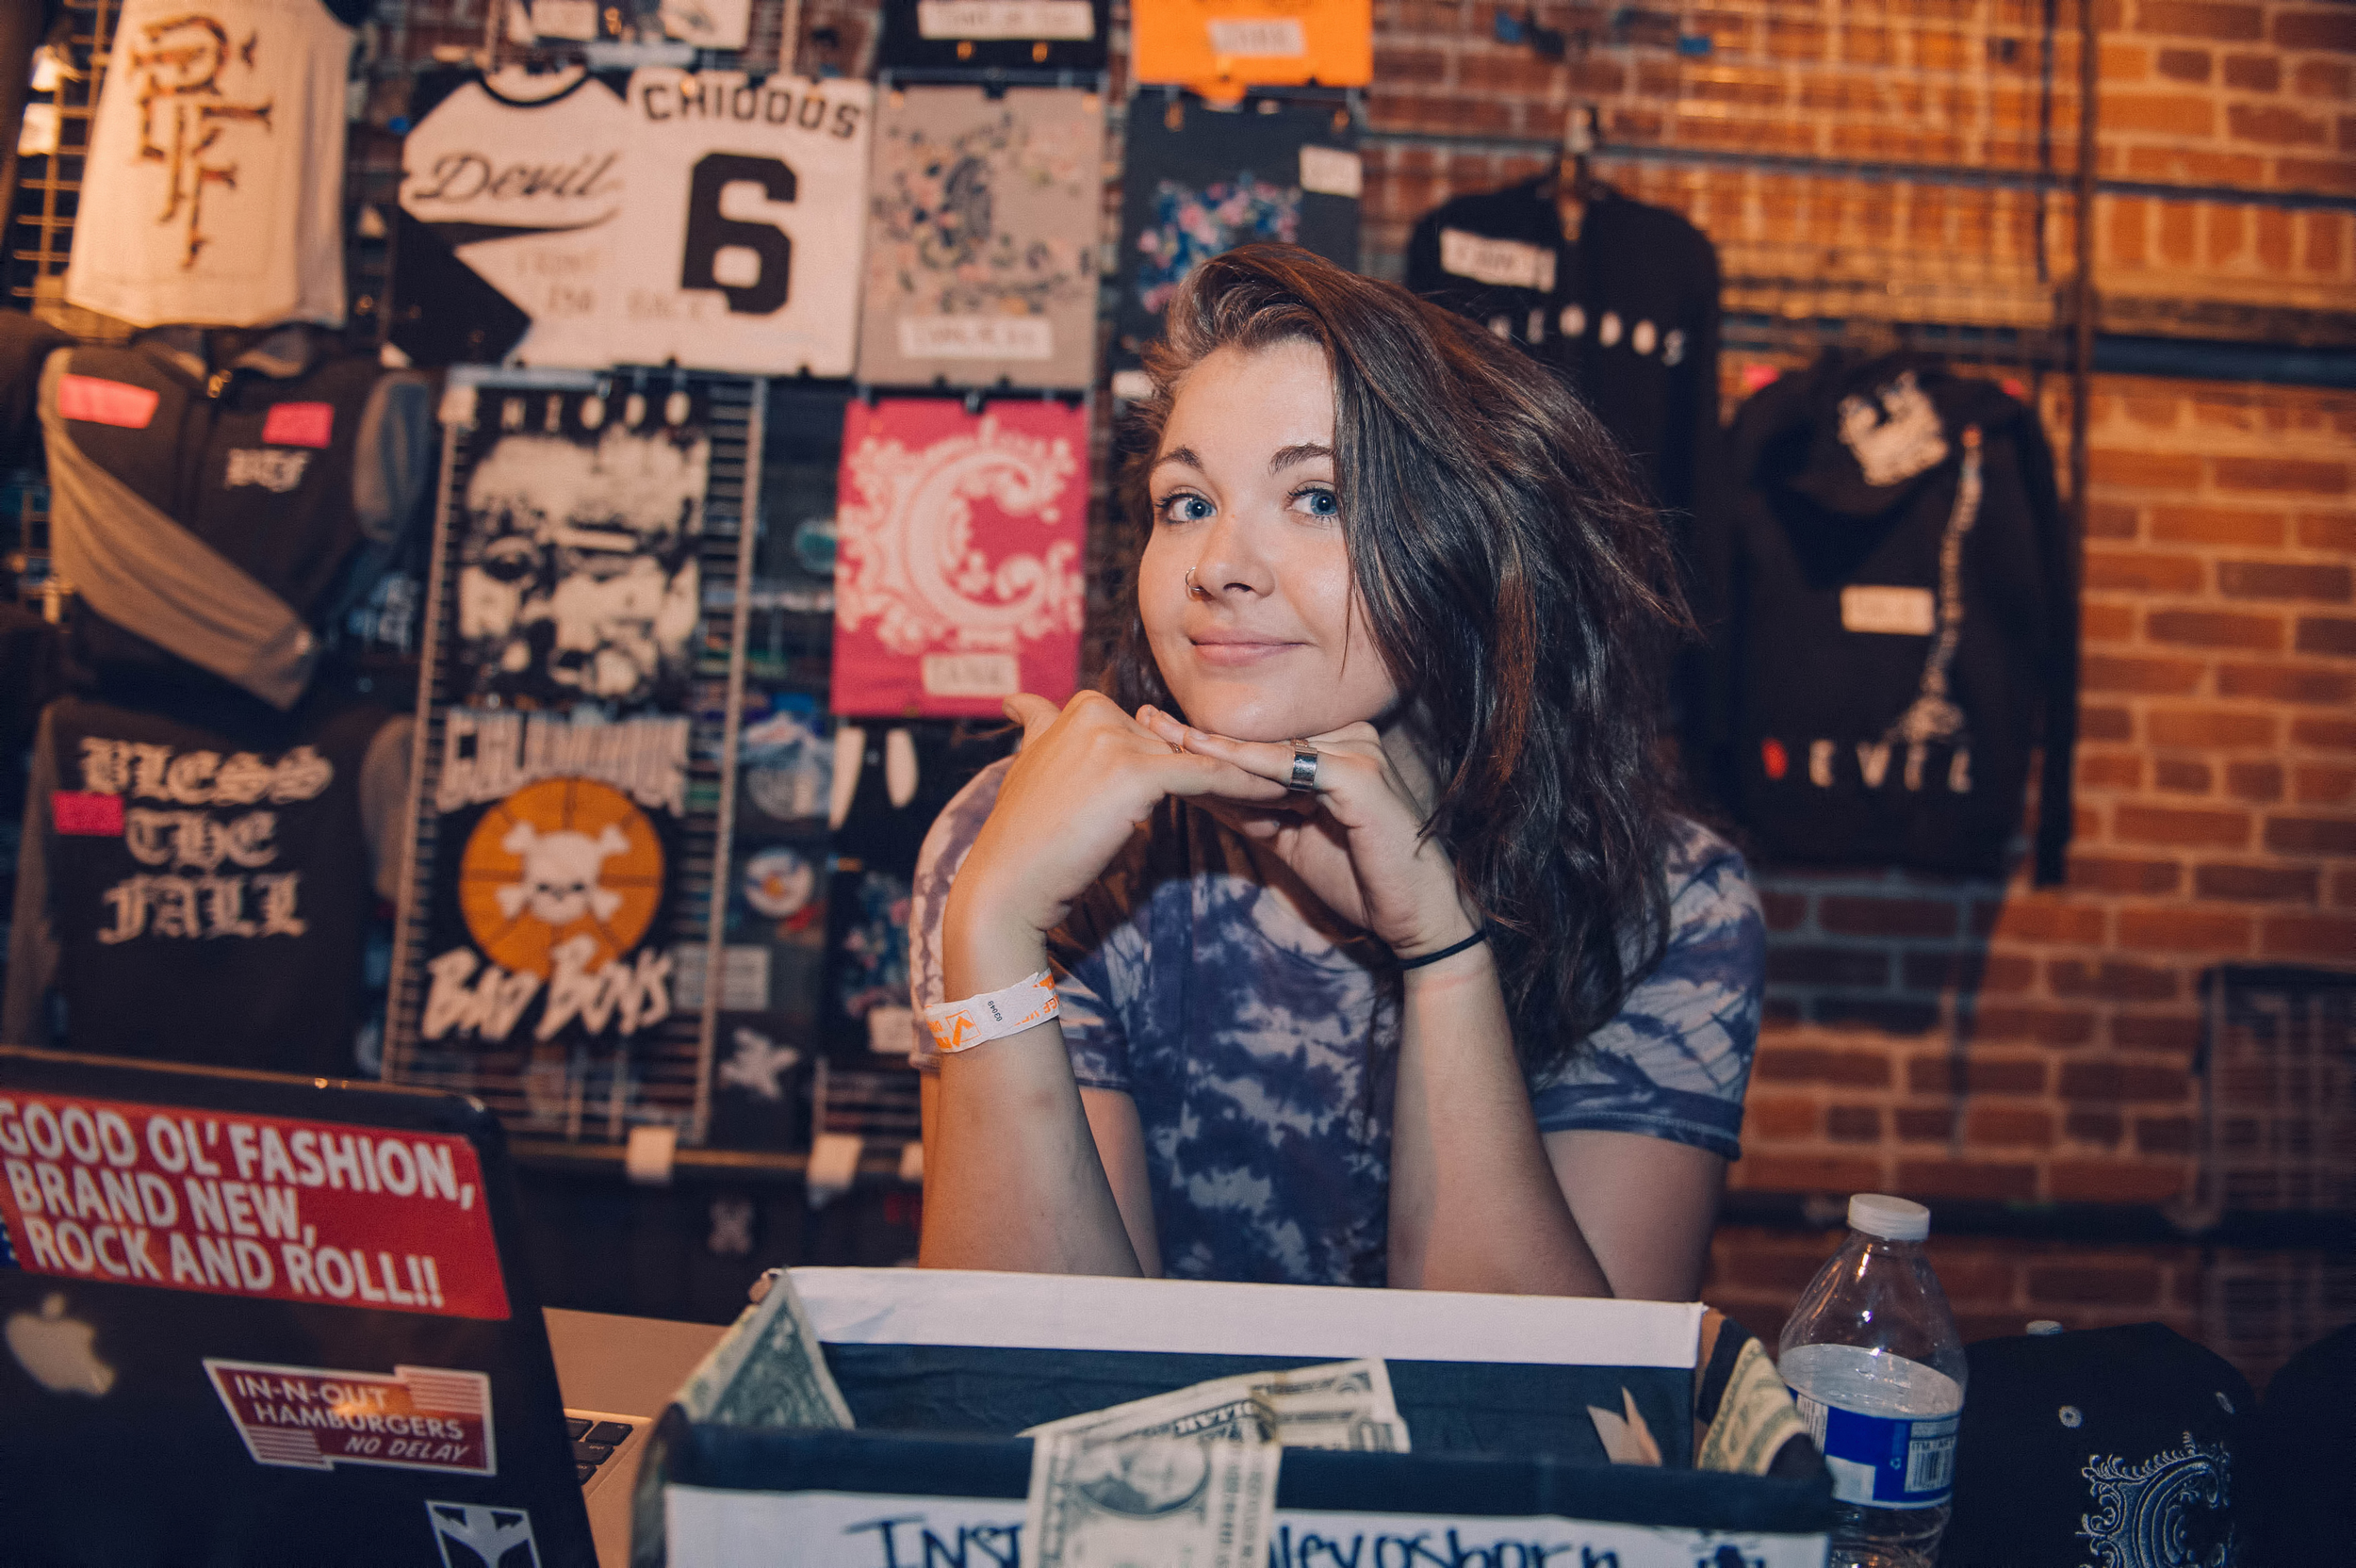 Ashley! I'm kind of in love with this photo. If you make it out to see Chiodos, go buy some mercy and tip this lovely lady!